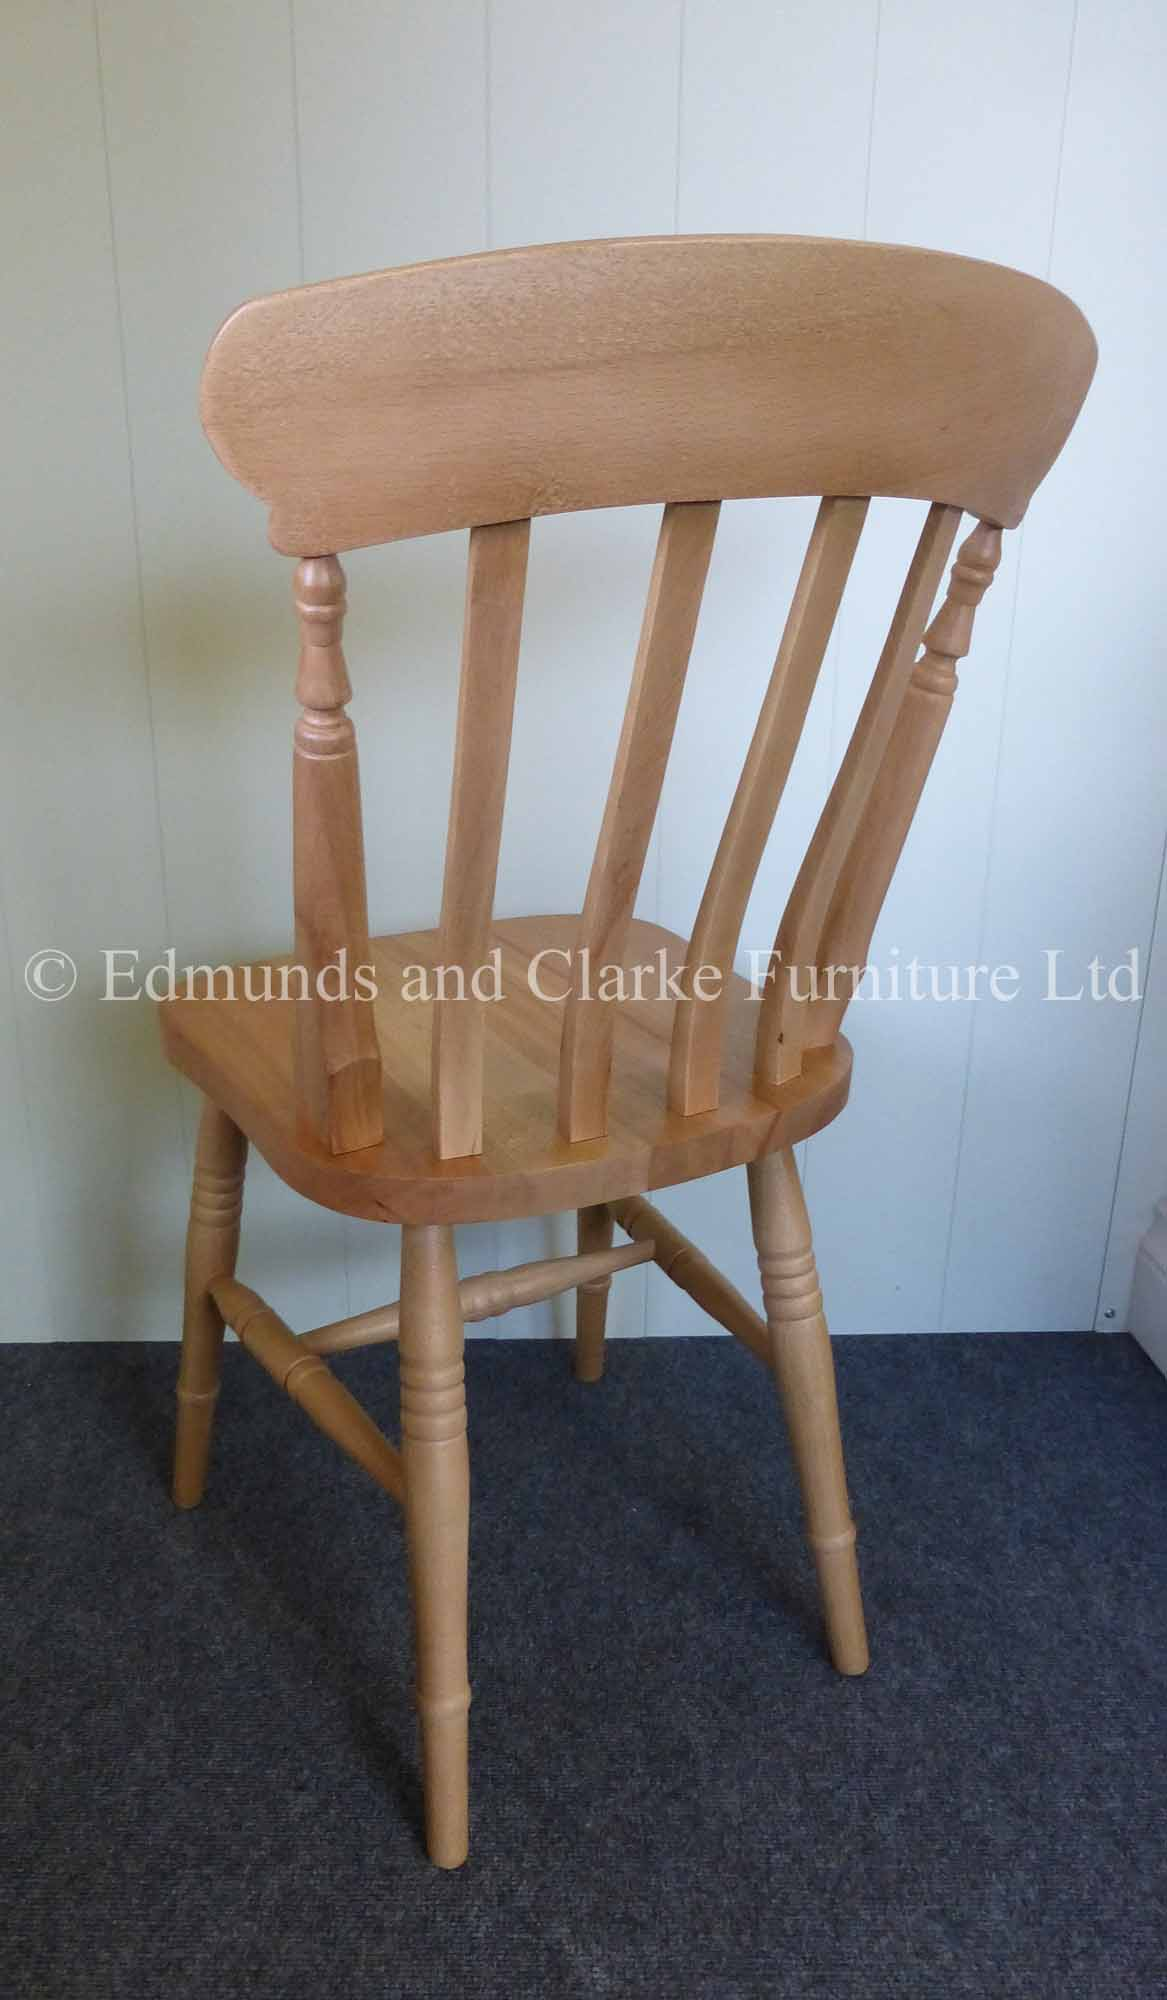 Farmhouse slat chair beech